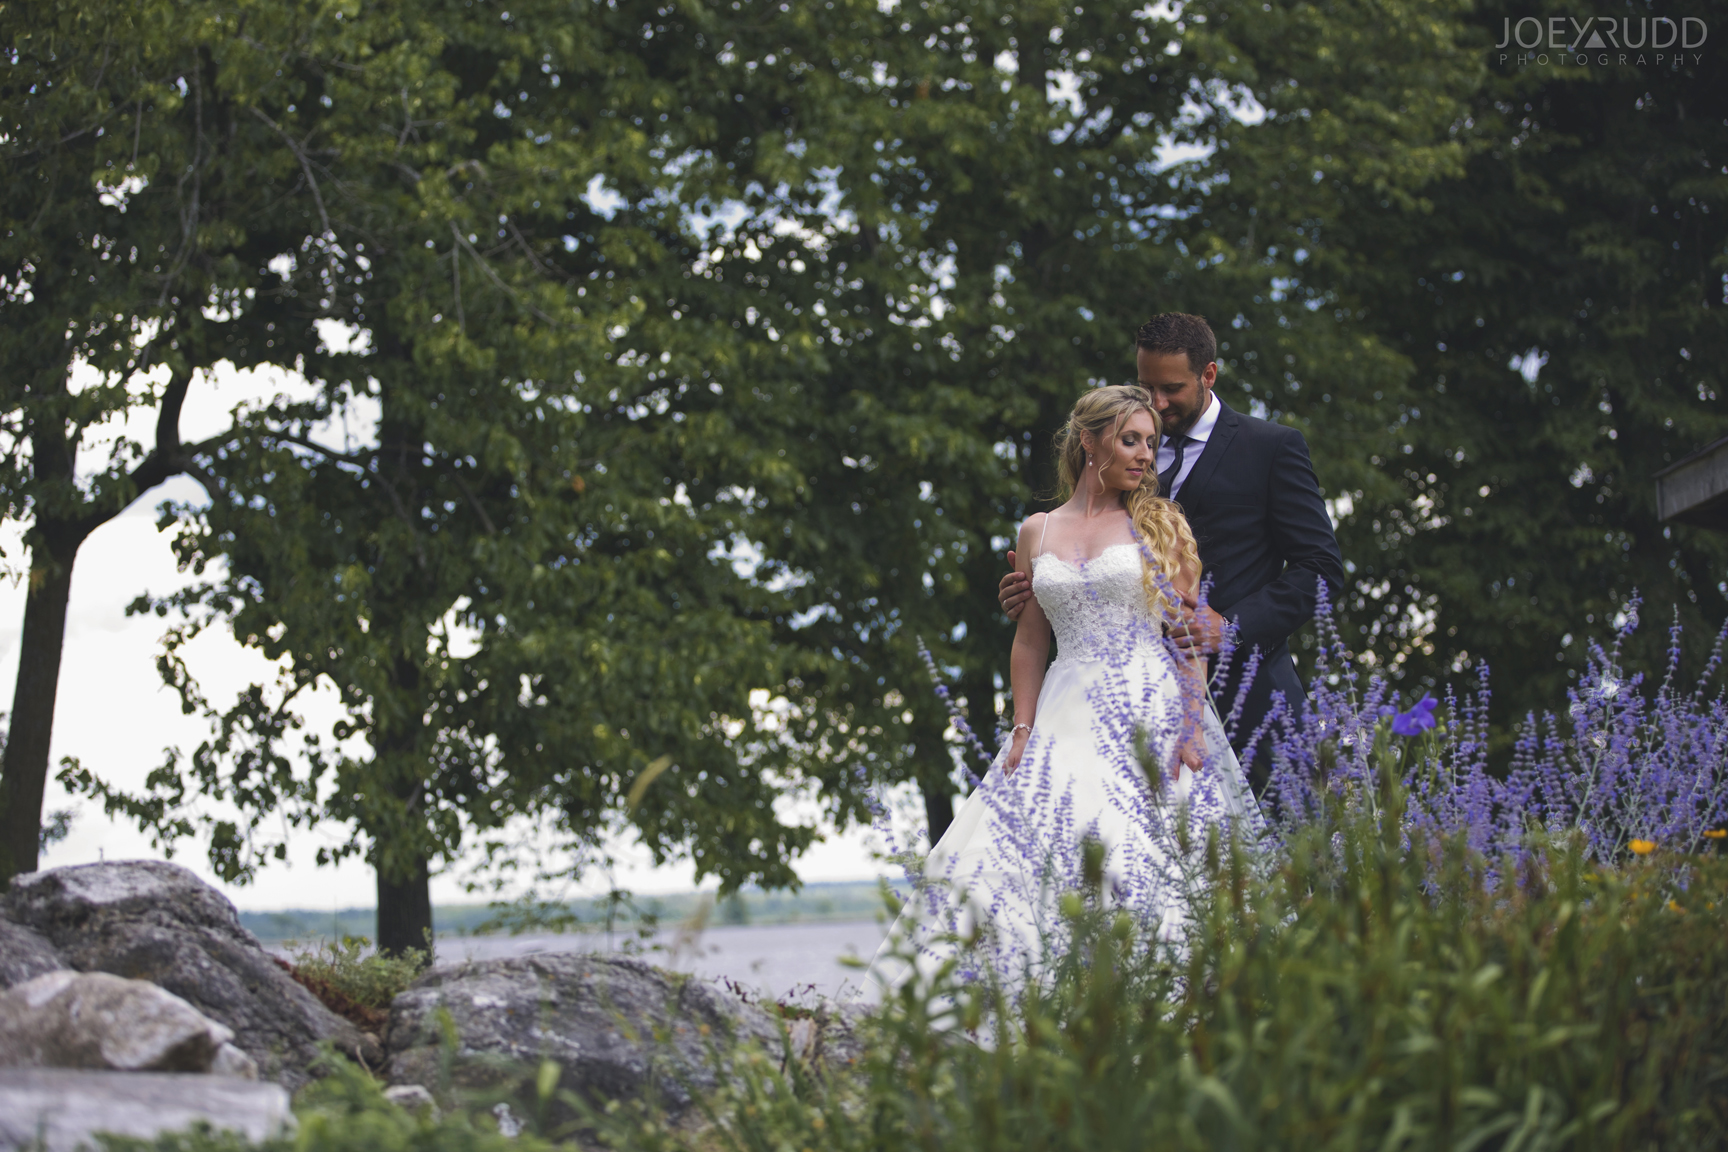 Calabogie Wedding at Barnet Park by Ottawa Wedding Photographer Joey Rudd Photography Flowers by the Lake